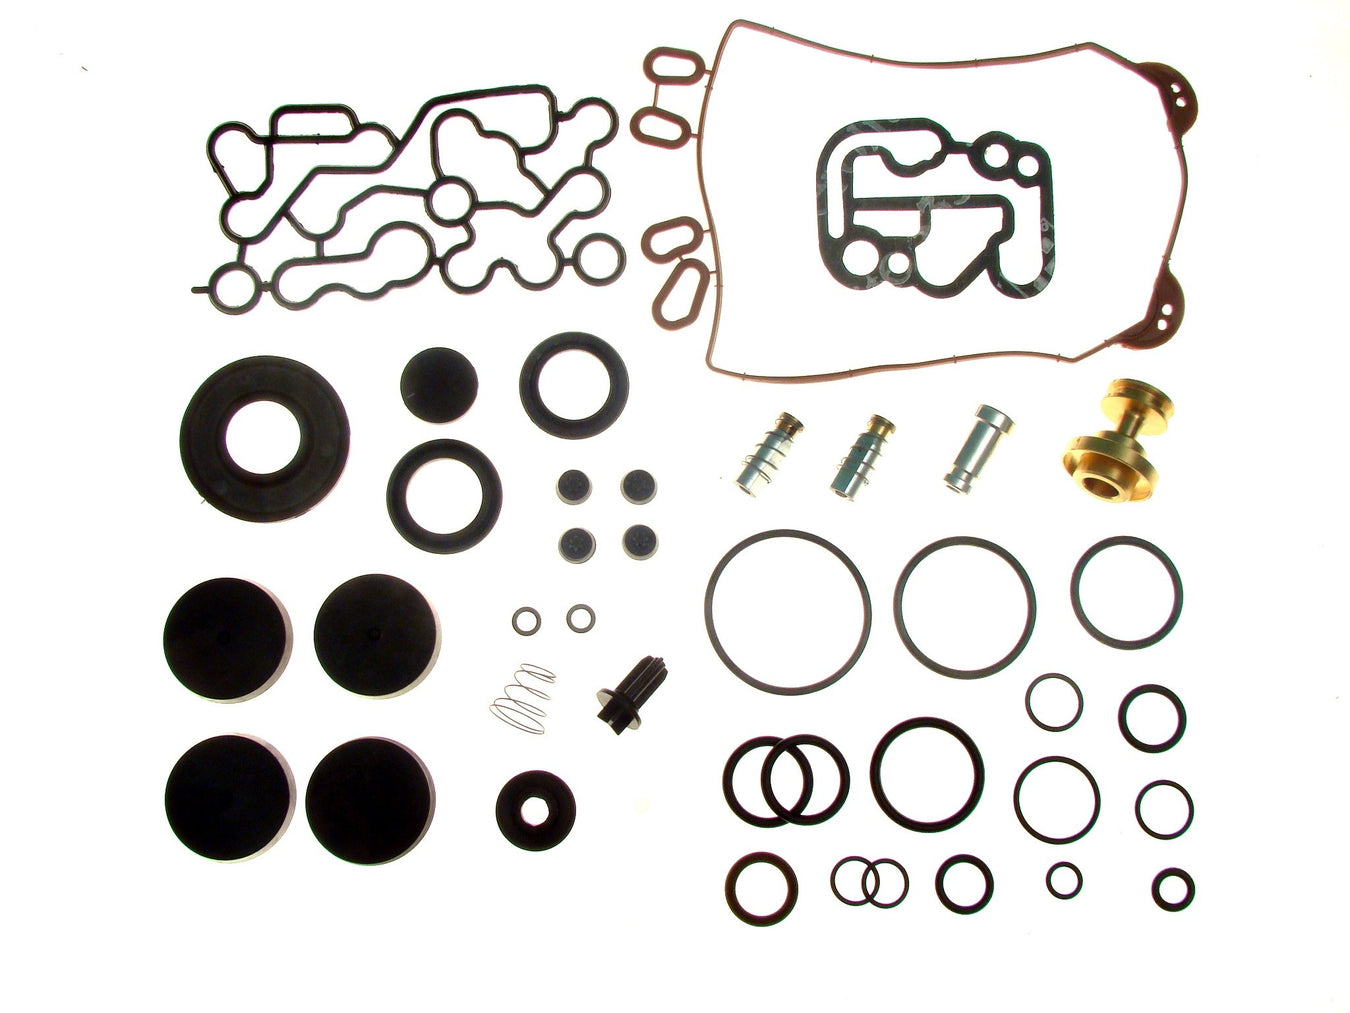 Airbrake Valve Repair-Kits